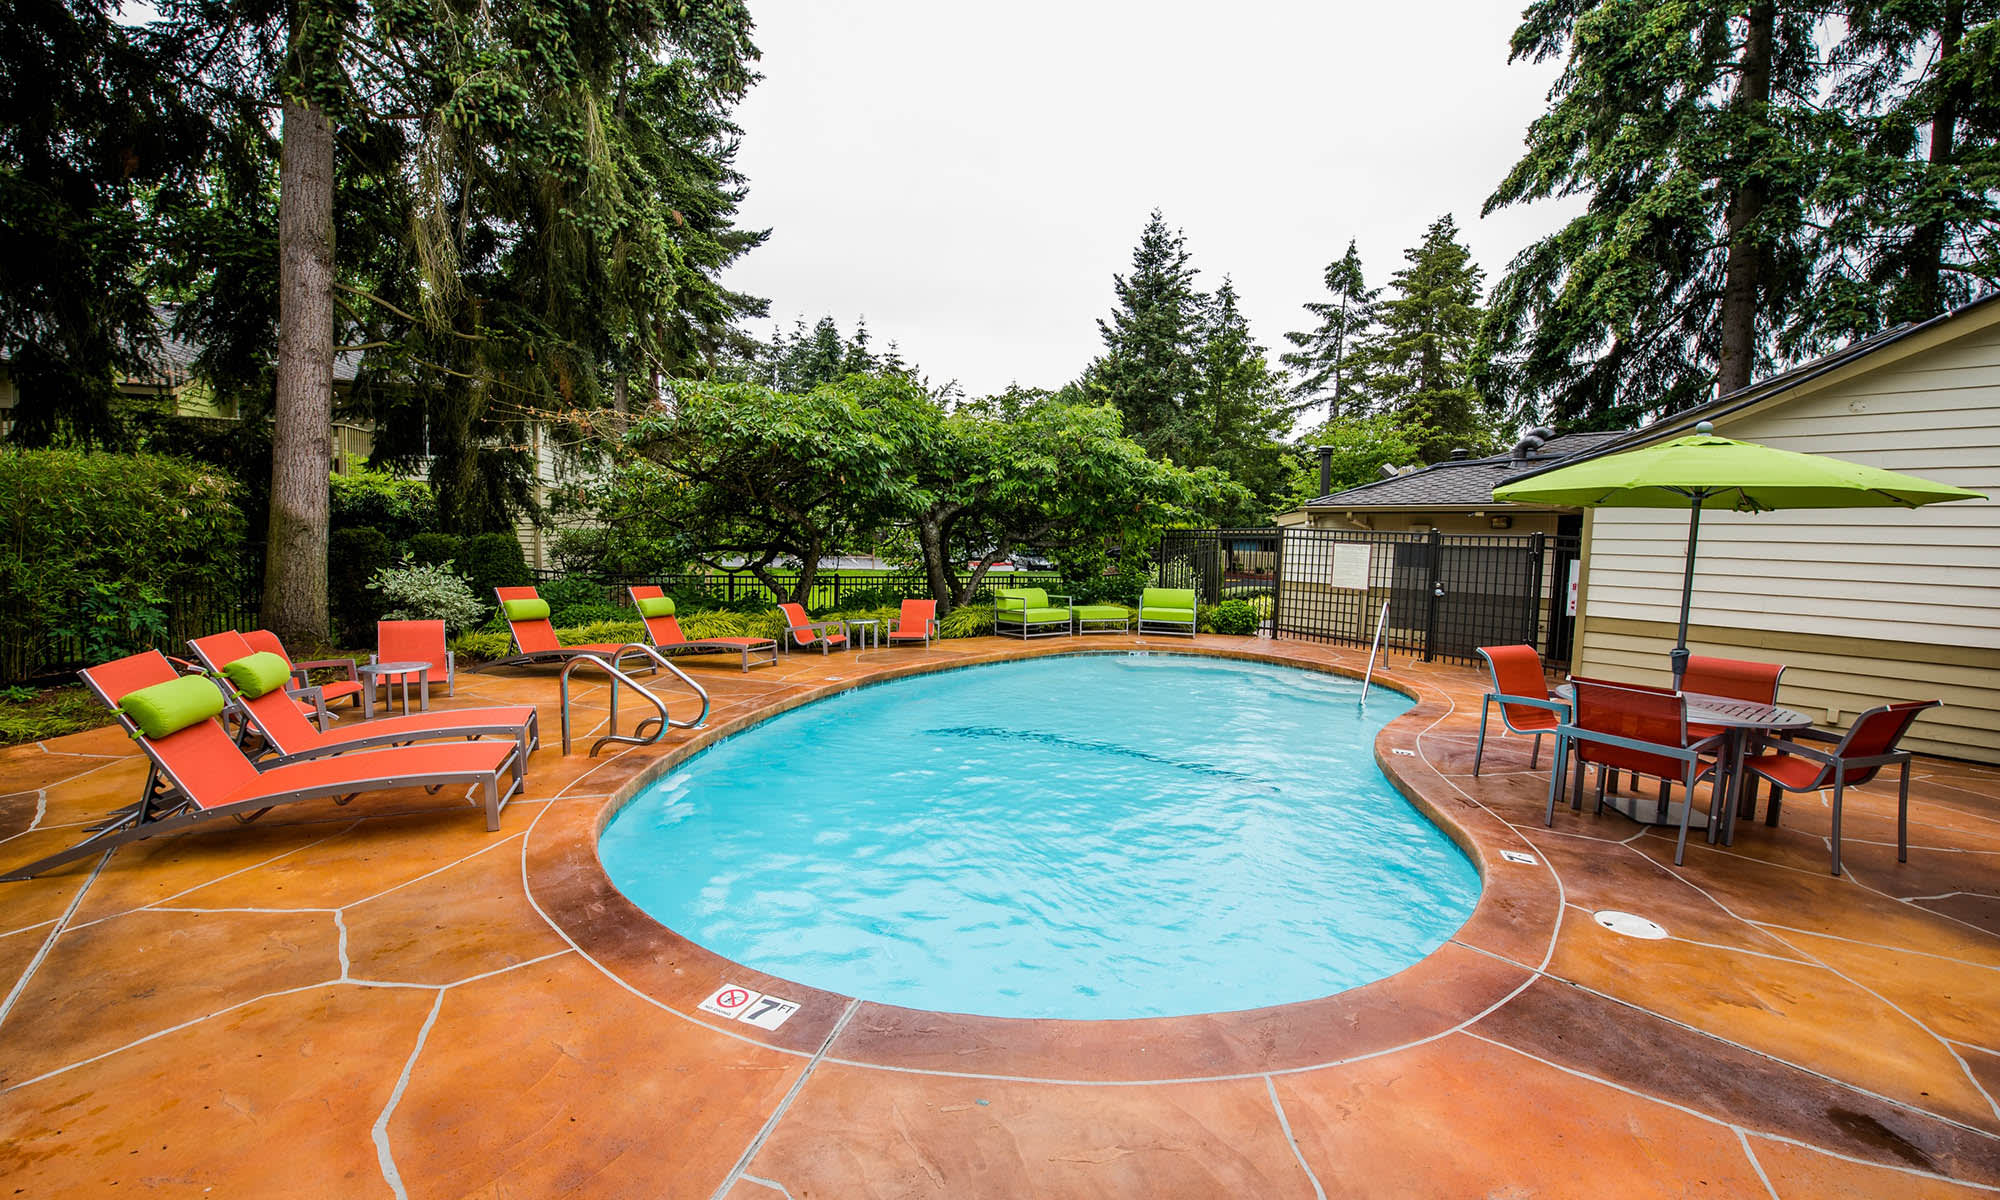 Map and directions to Edgewood Park Apartments in Bellevue, Washington